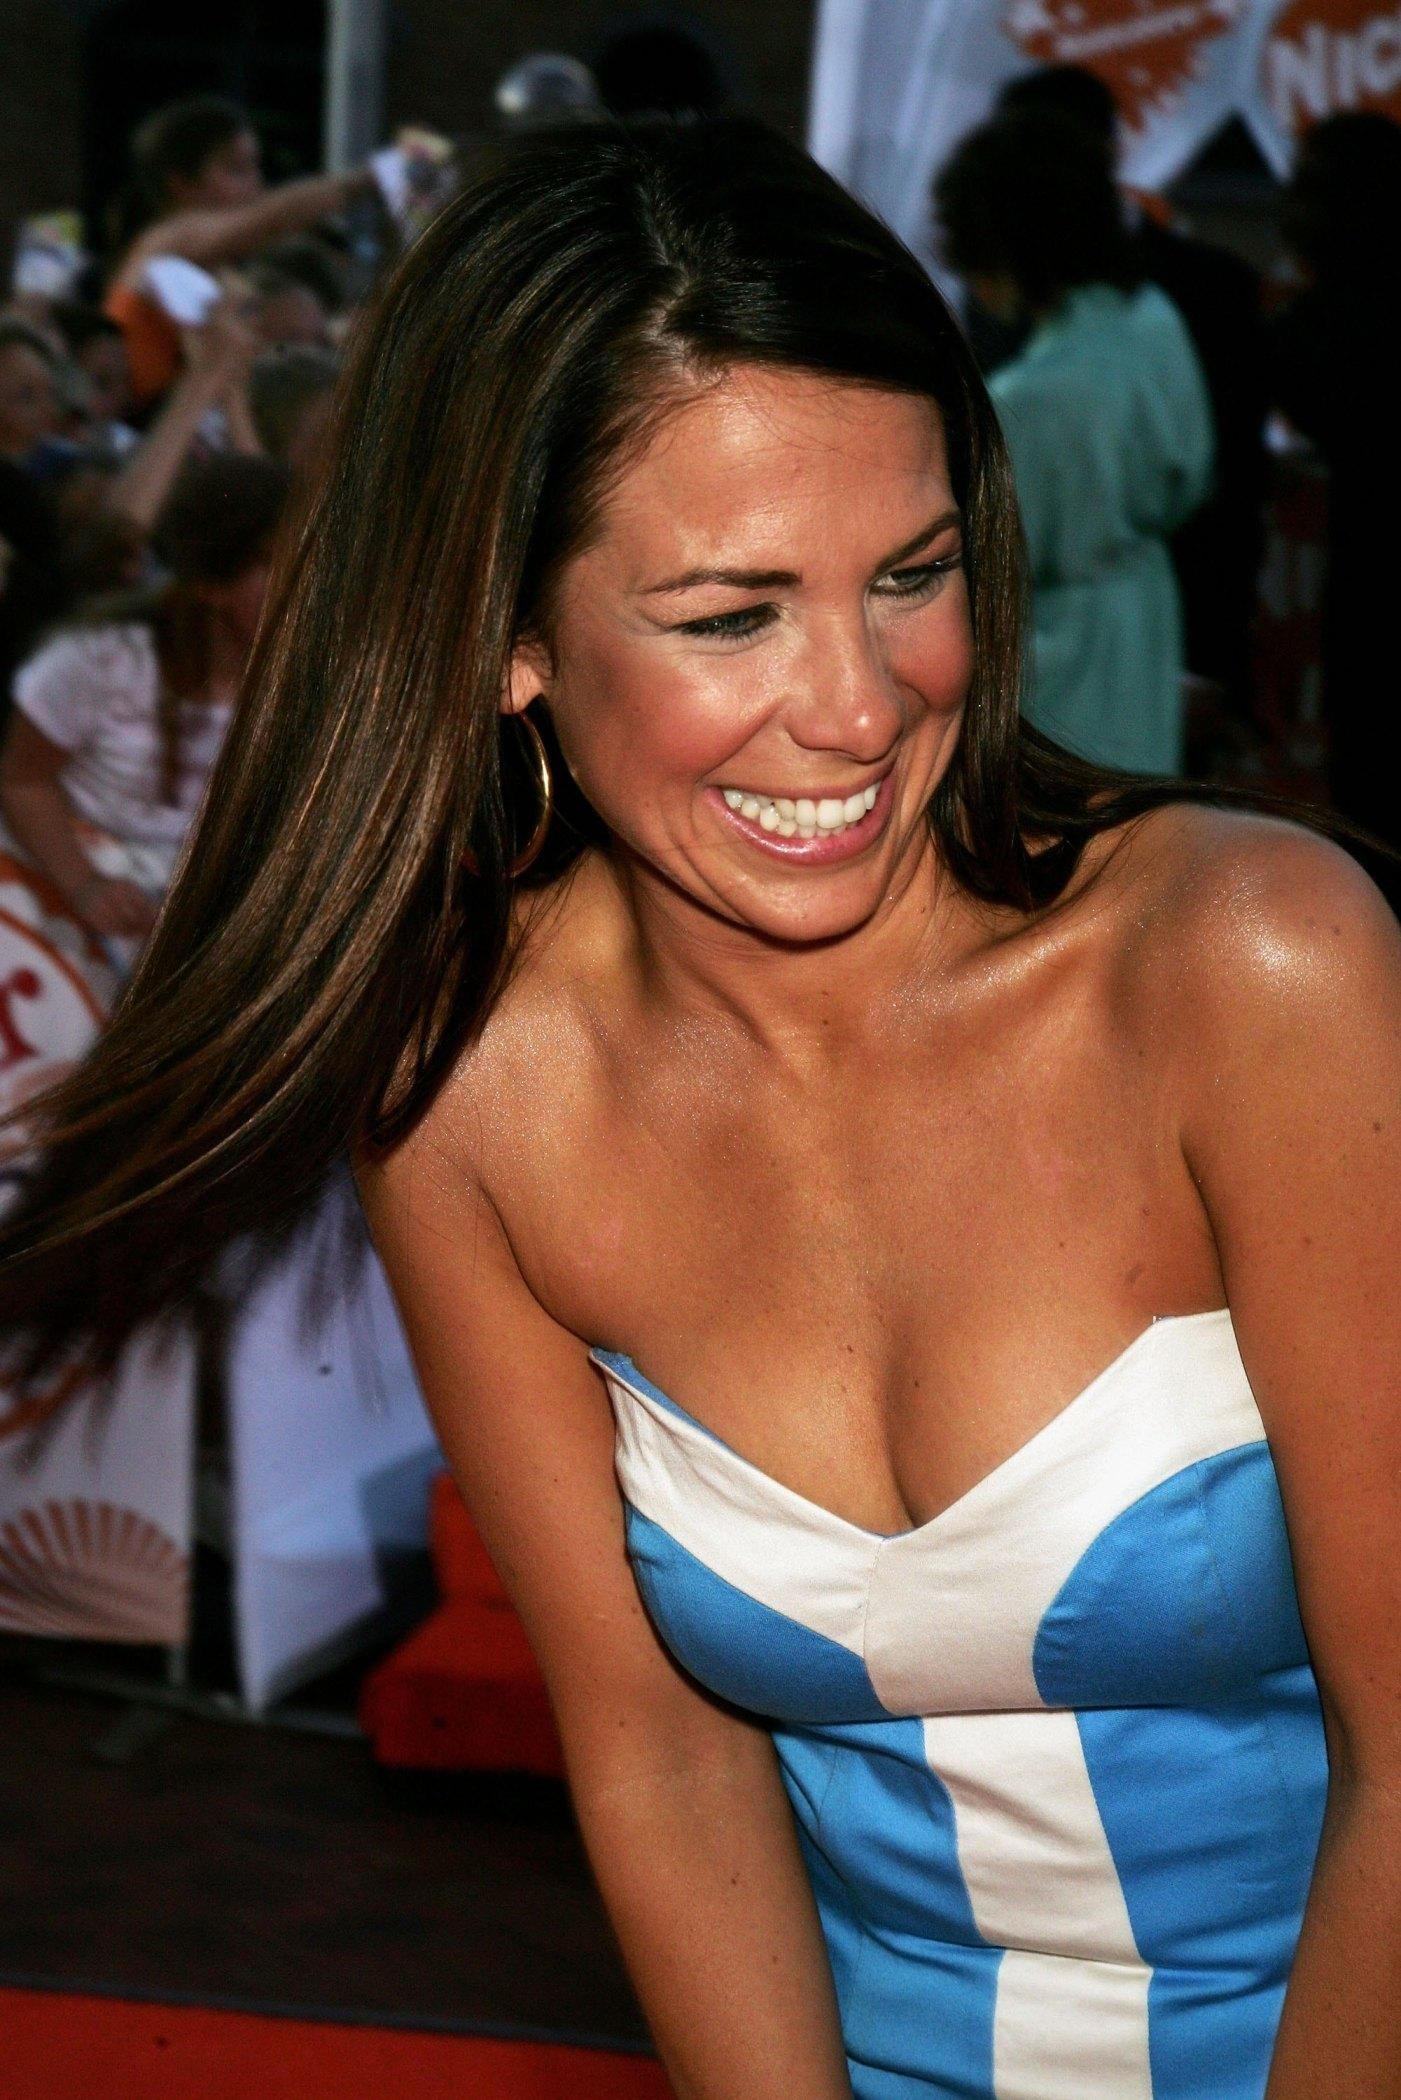 59378_Kate_Ritchie23_122_1145lo.jpg